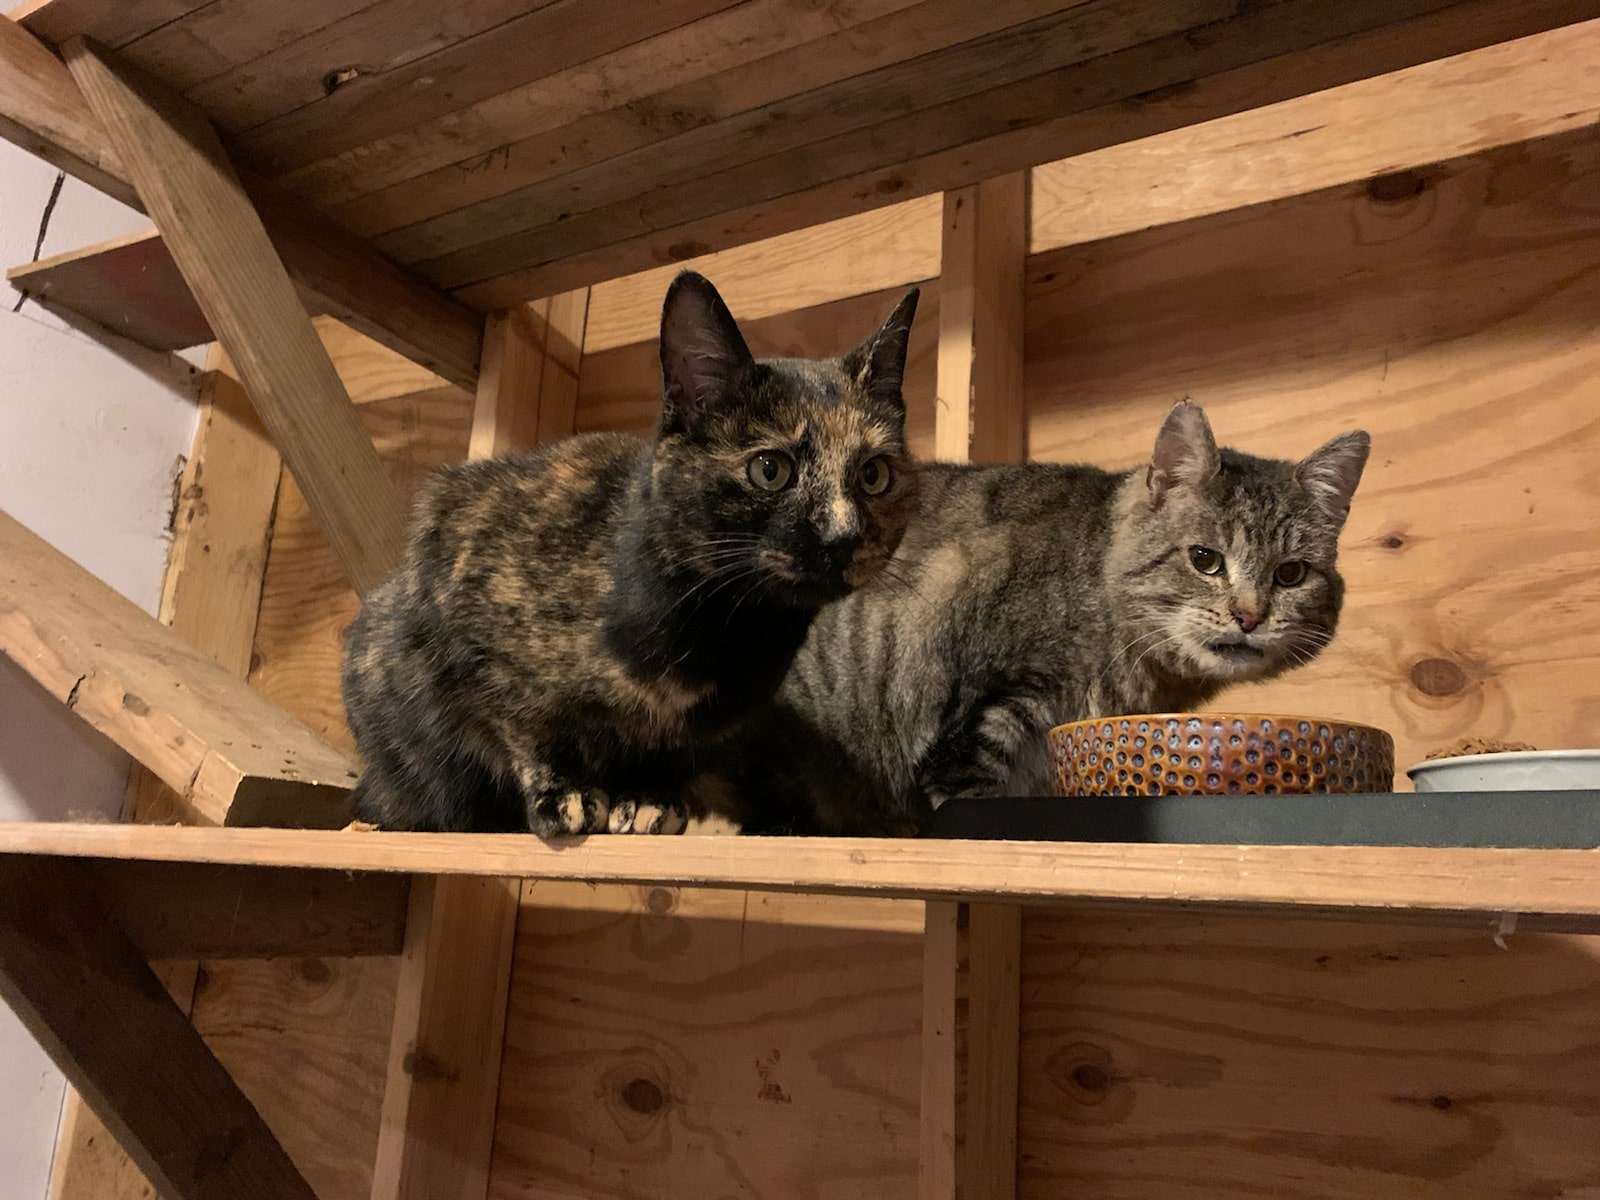 barn cats crouching over bowl